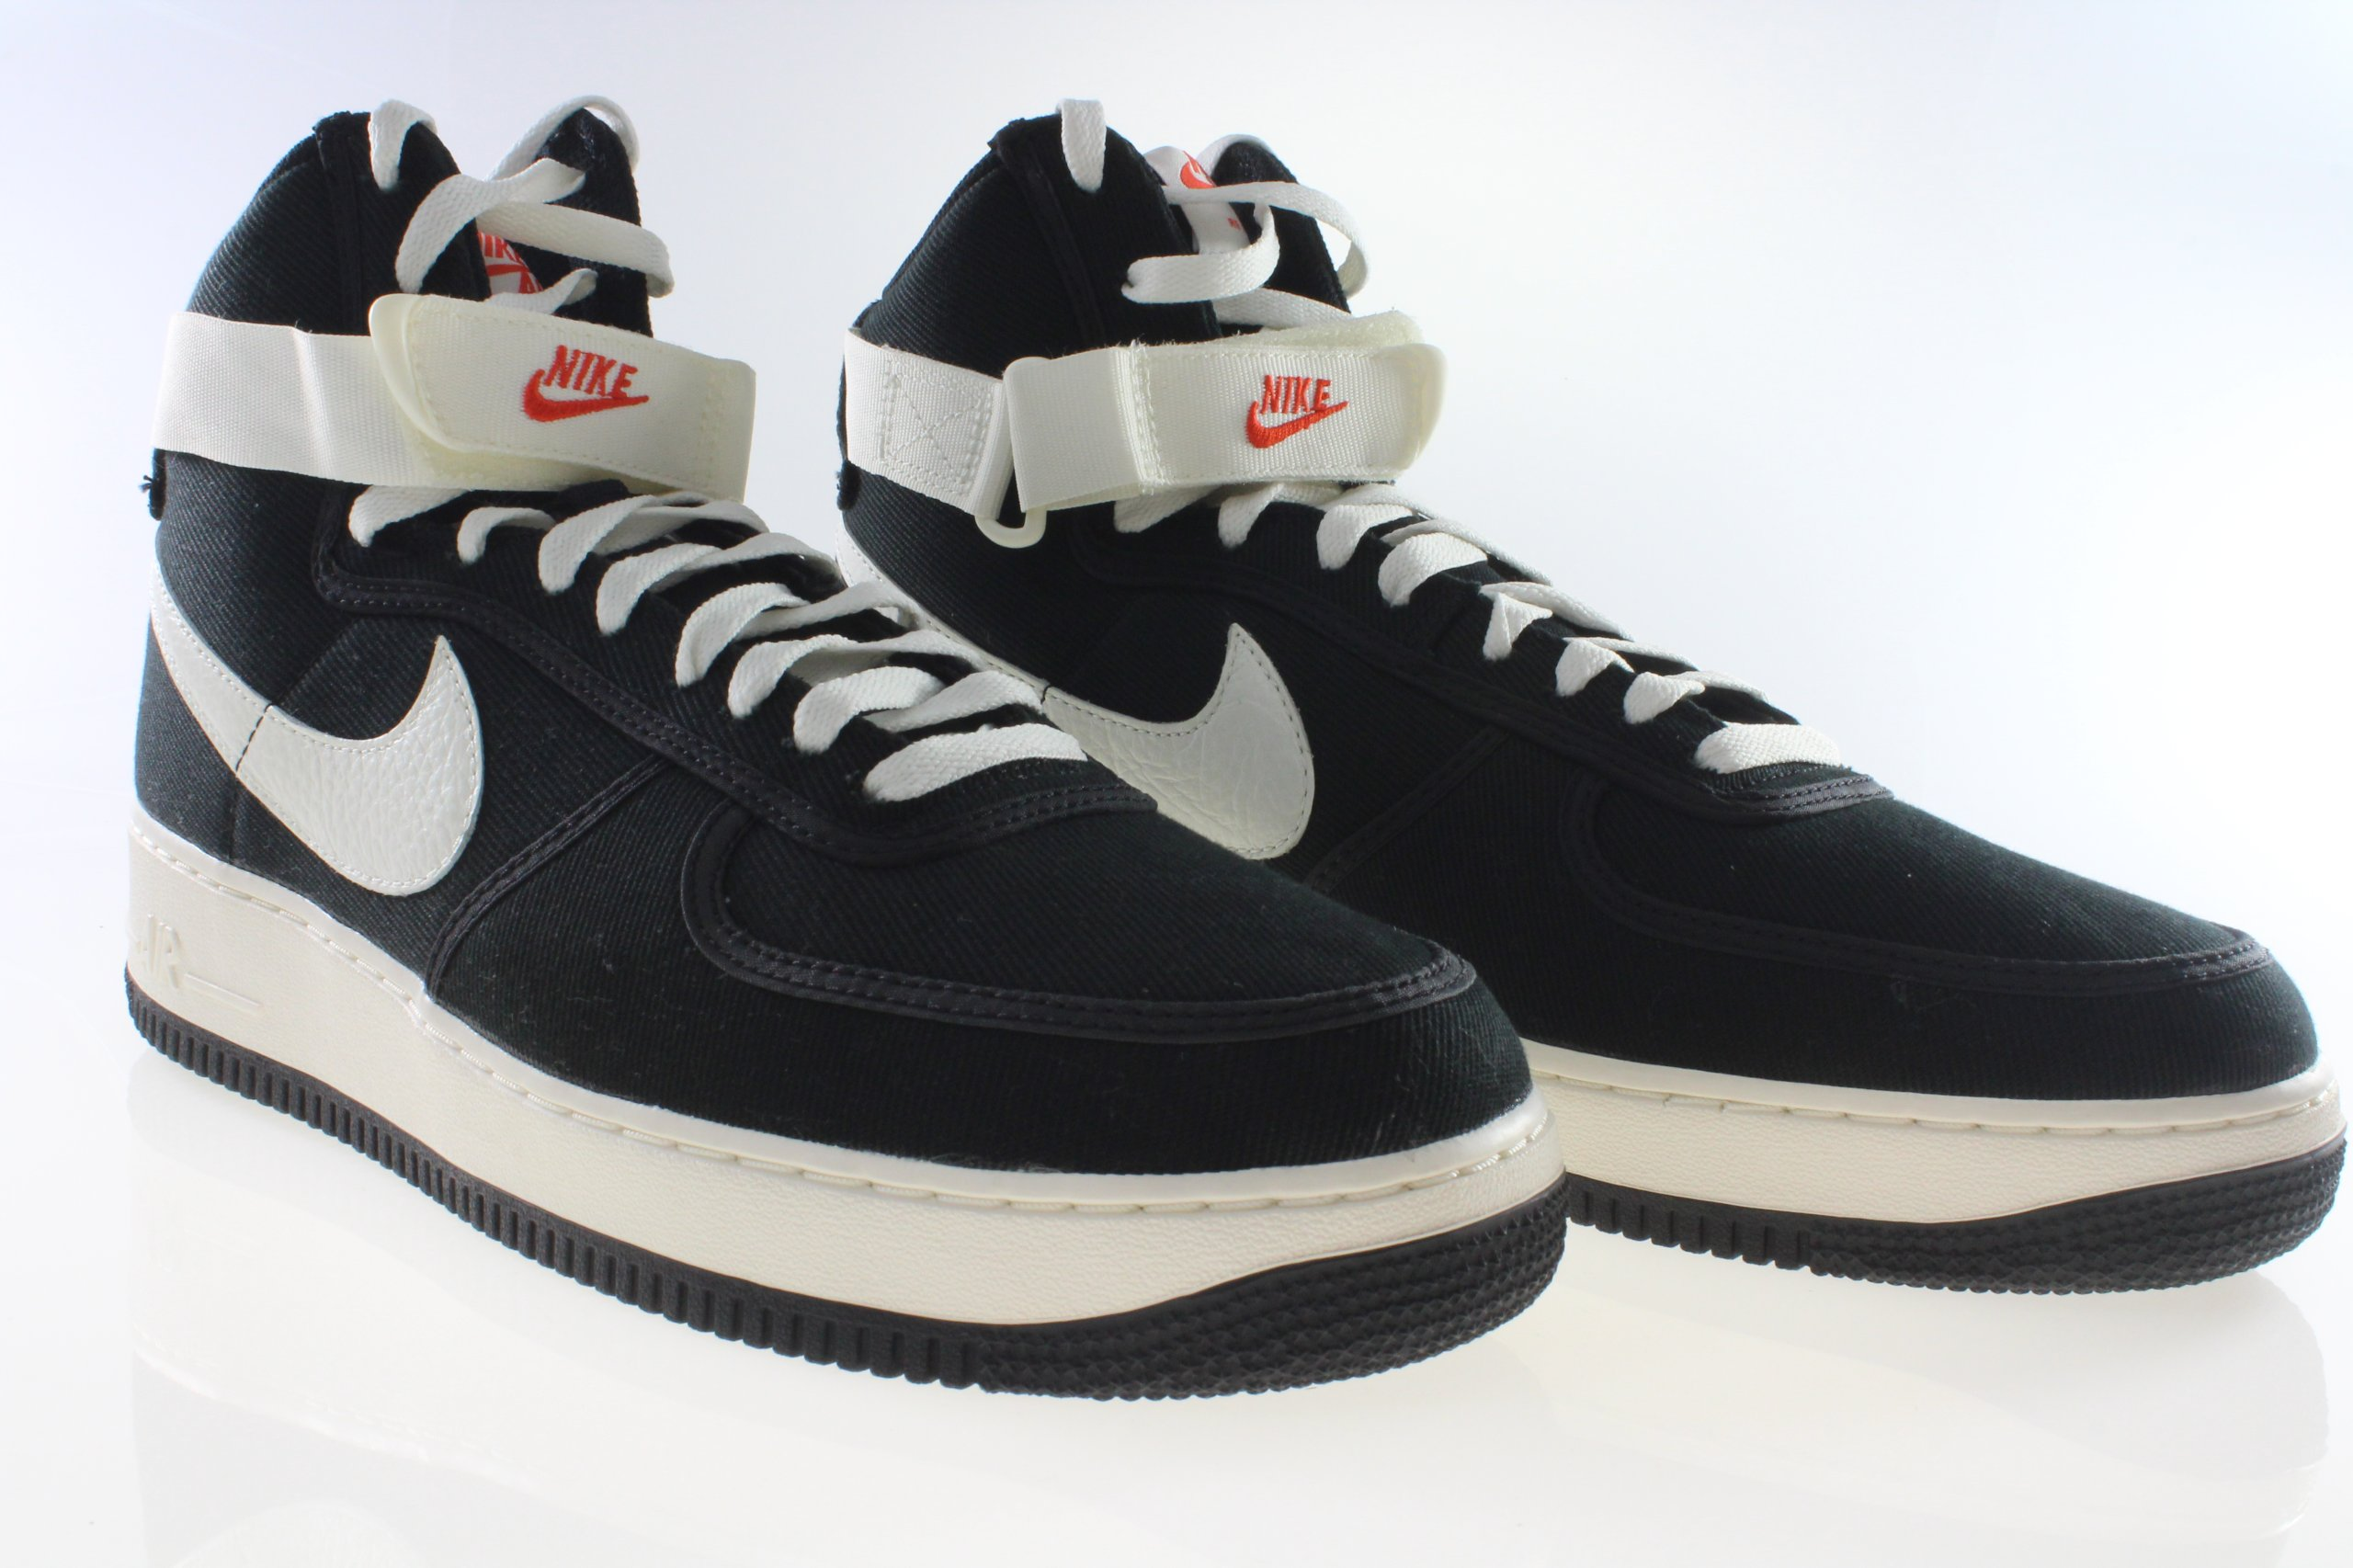 save off ea3d7 942a0 Buty NIKE AIR FORCE 1 HIGH RETRO r. 46 Jordan Kd (7355259459)